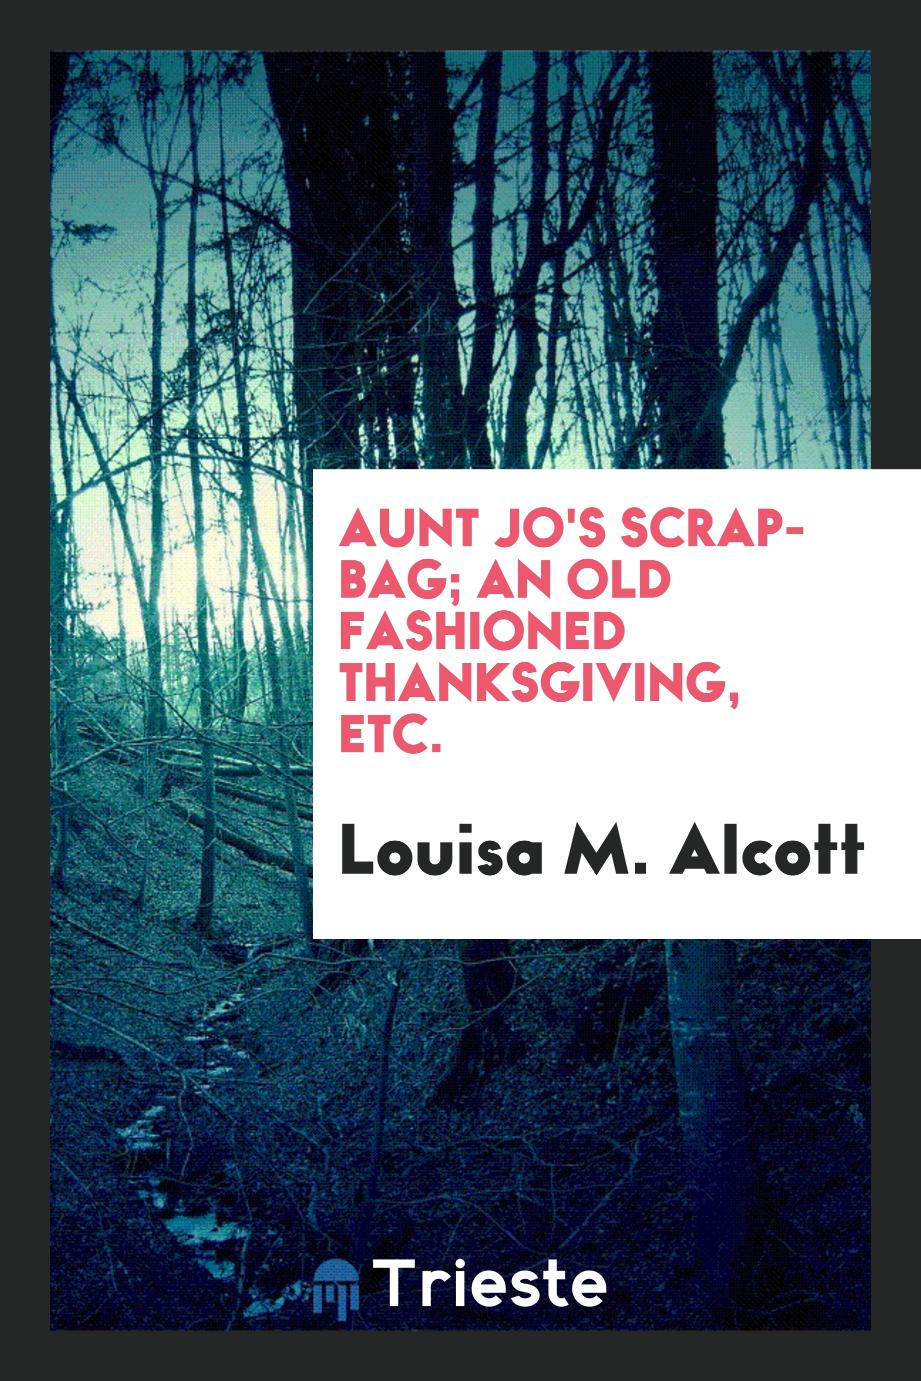 Aunt Jo's Scrap-Bag; An Old Fashioned Thanksgiving, etc.